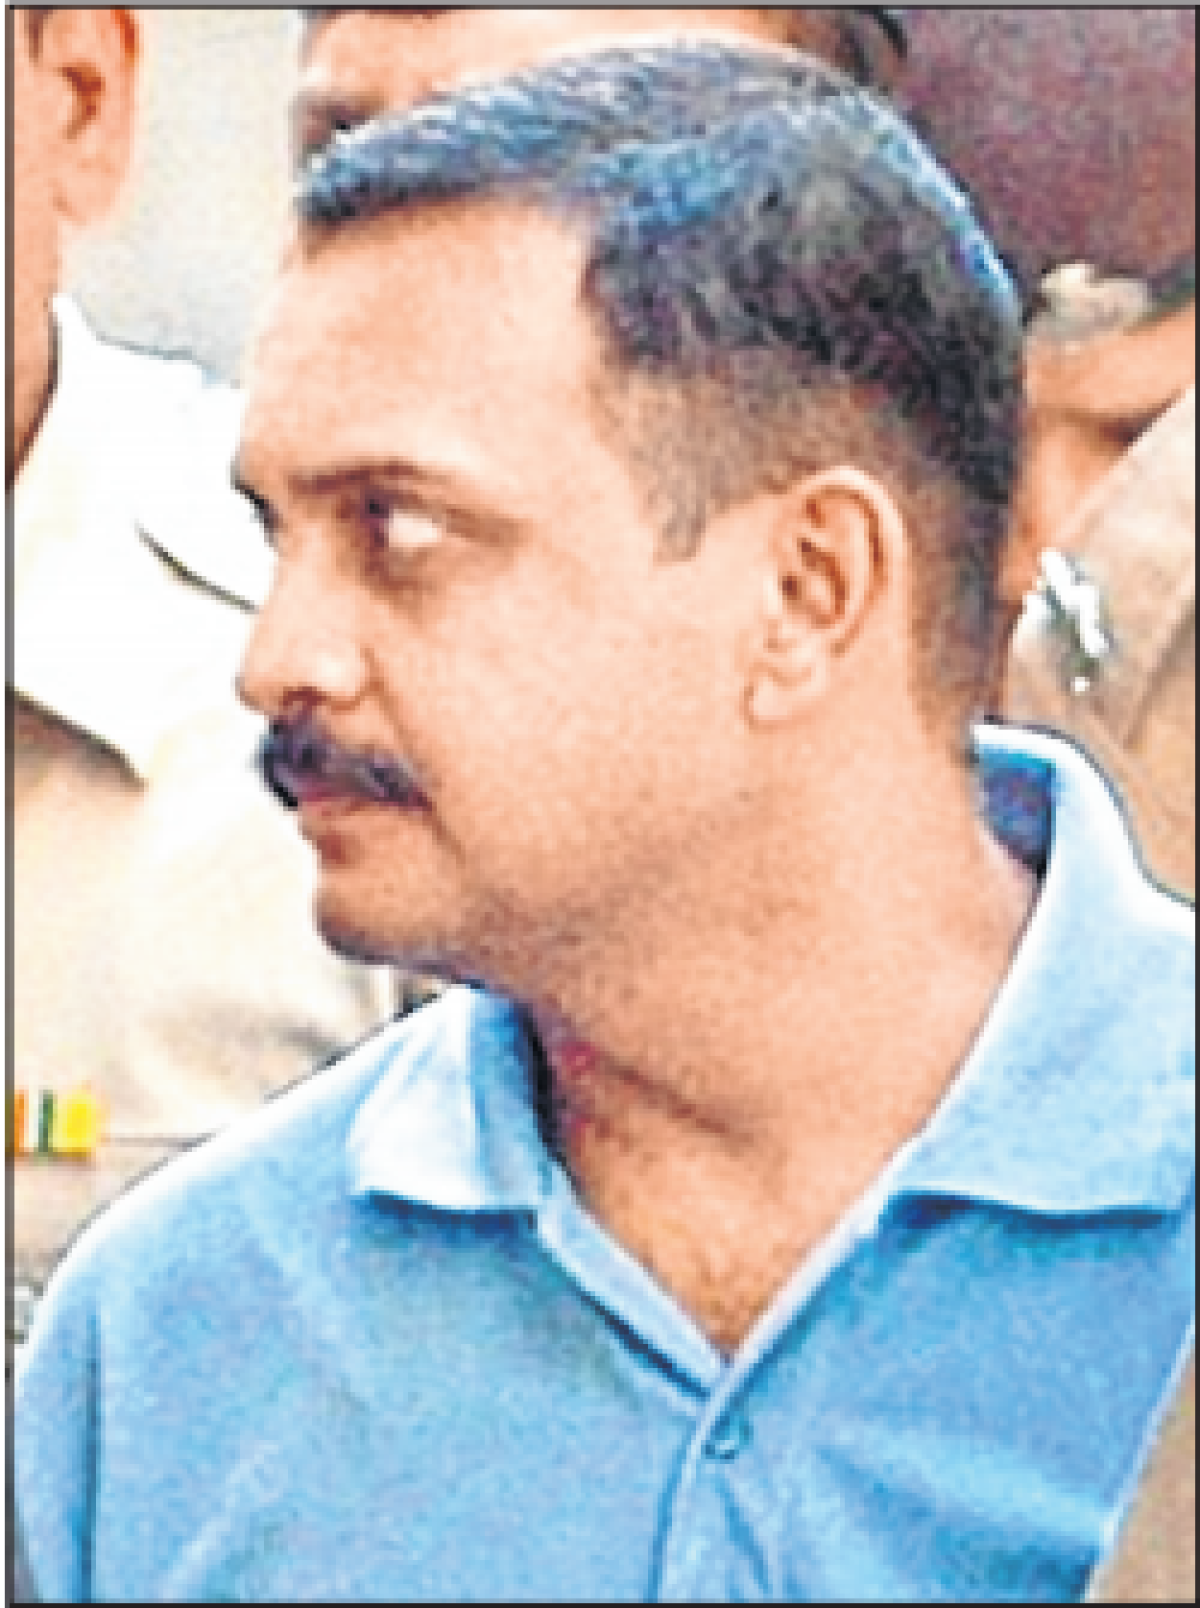 Bombay High Court adjourns petition for Colonel Purohit's bail